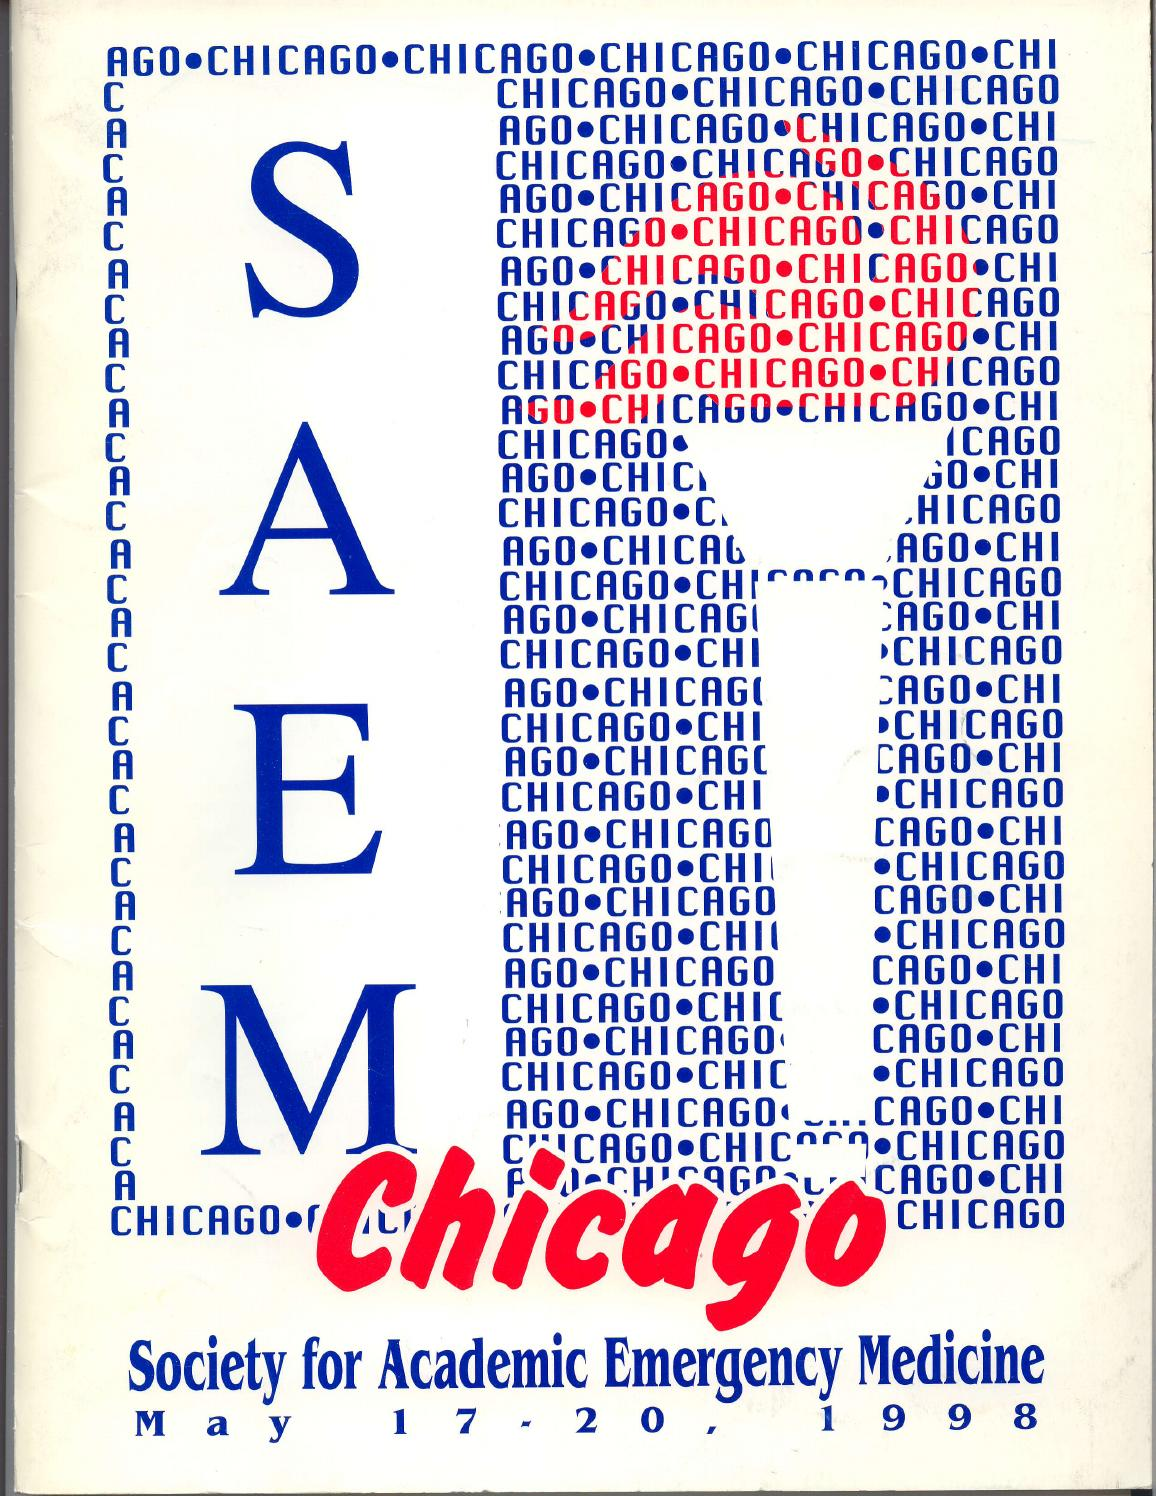 SAEM 1998 Annual Meeting Program by Society for Academic